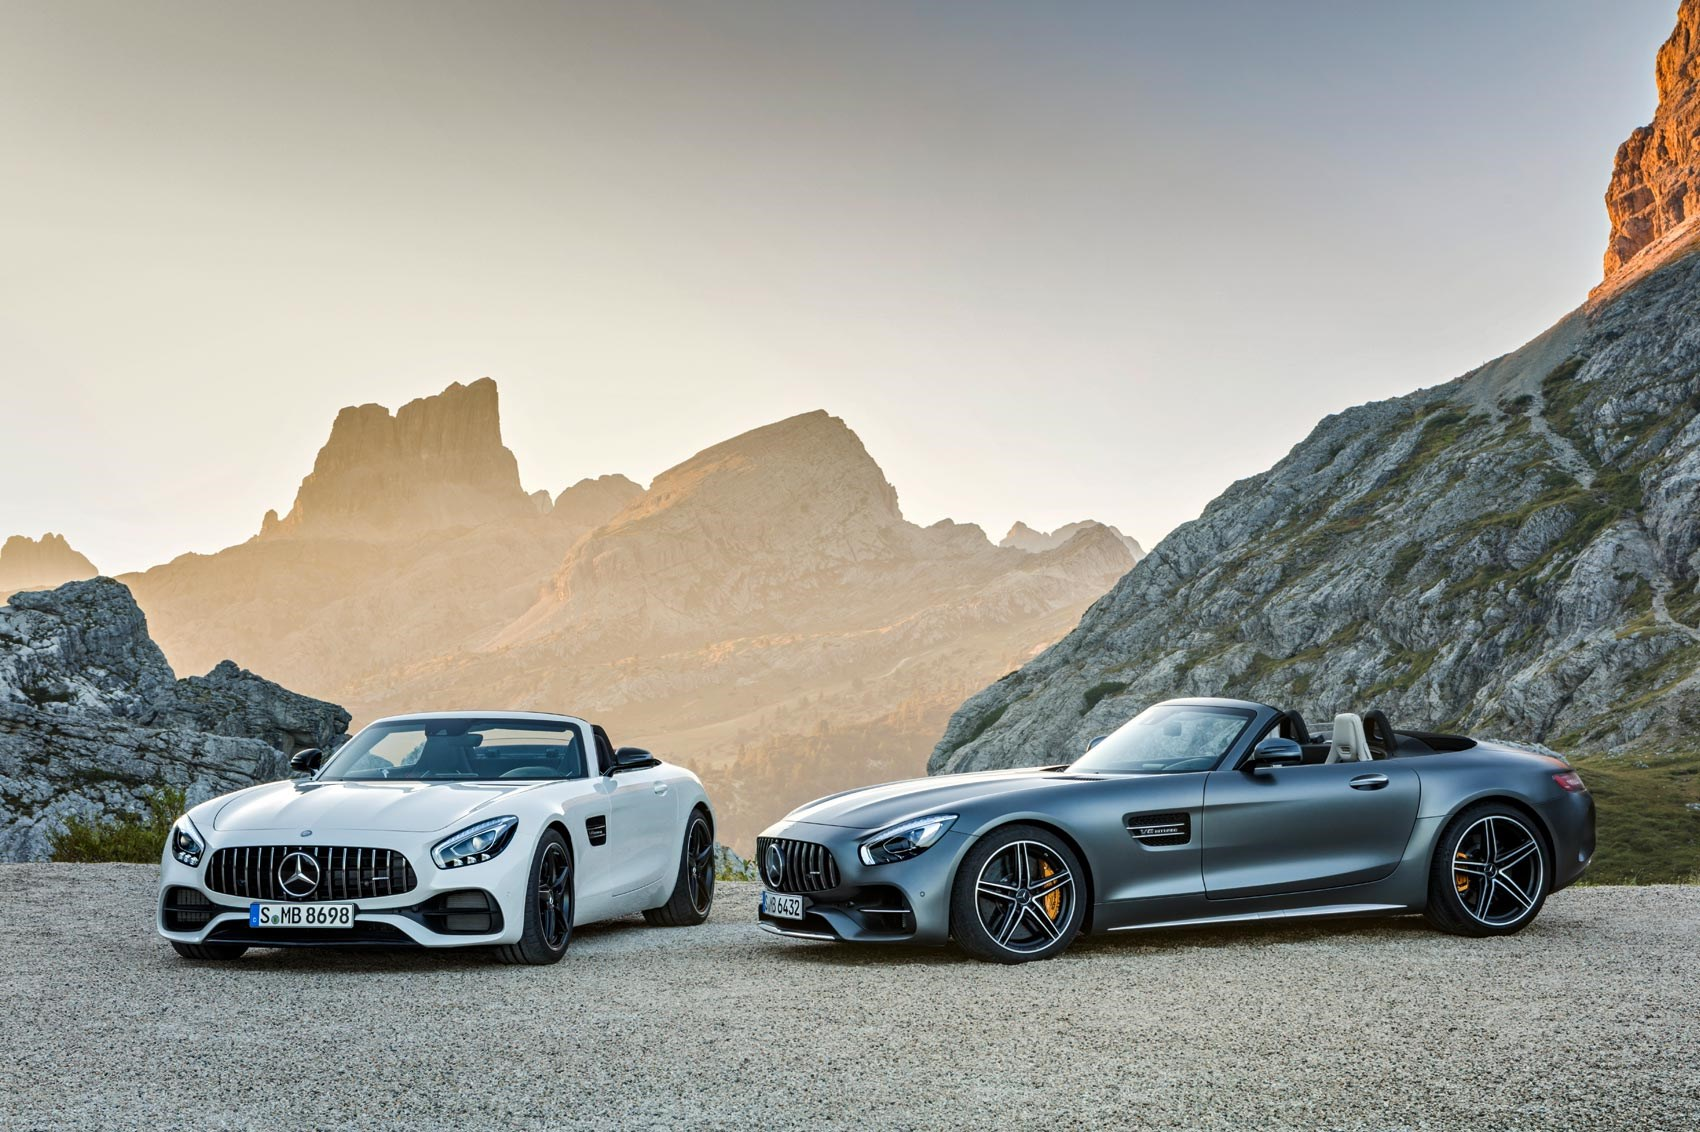 Alfa img showing gt sls amg gt roadster interior -  2016 Mercedes Amg Gt Roadster And Gt C Roadster